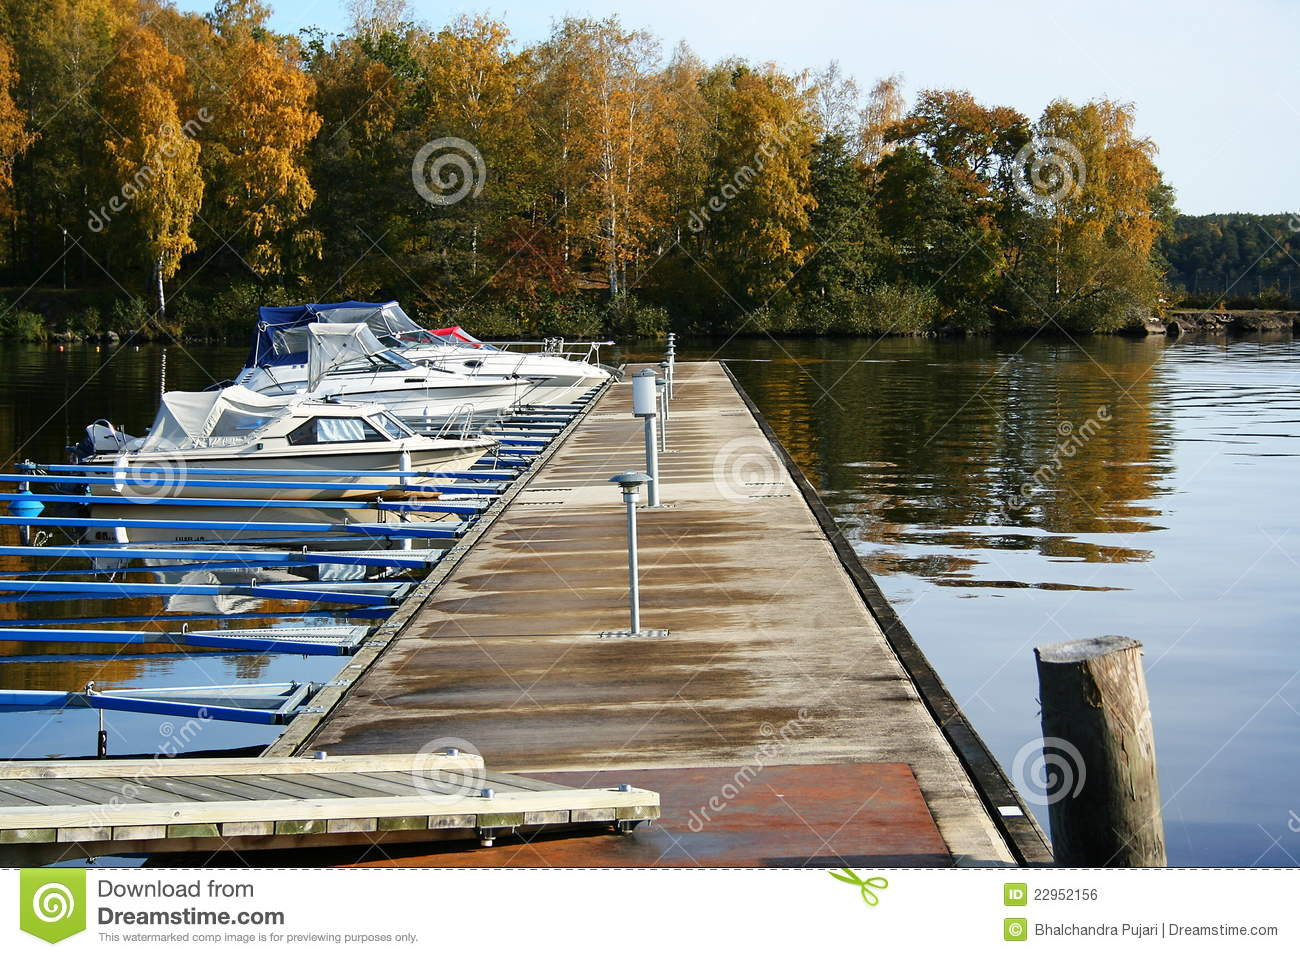 Boat Parking Royalty Free Stock Image - Image: 22952156